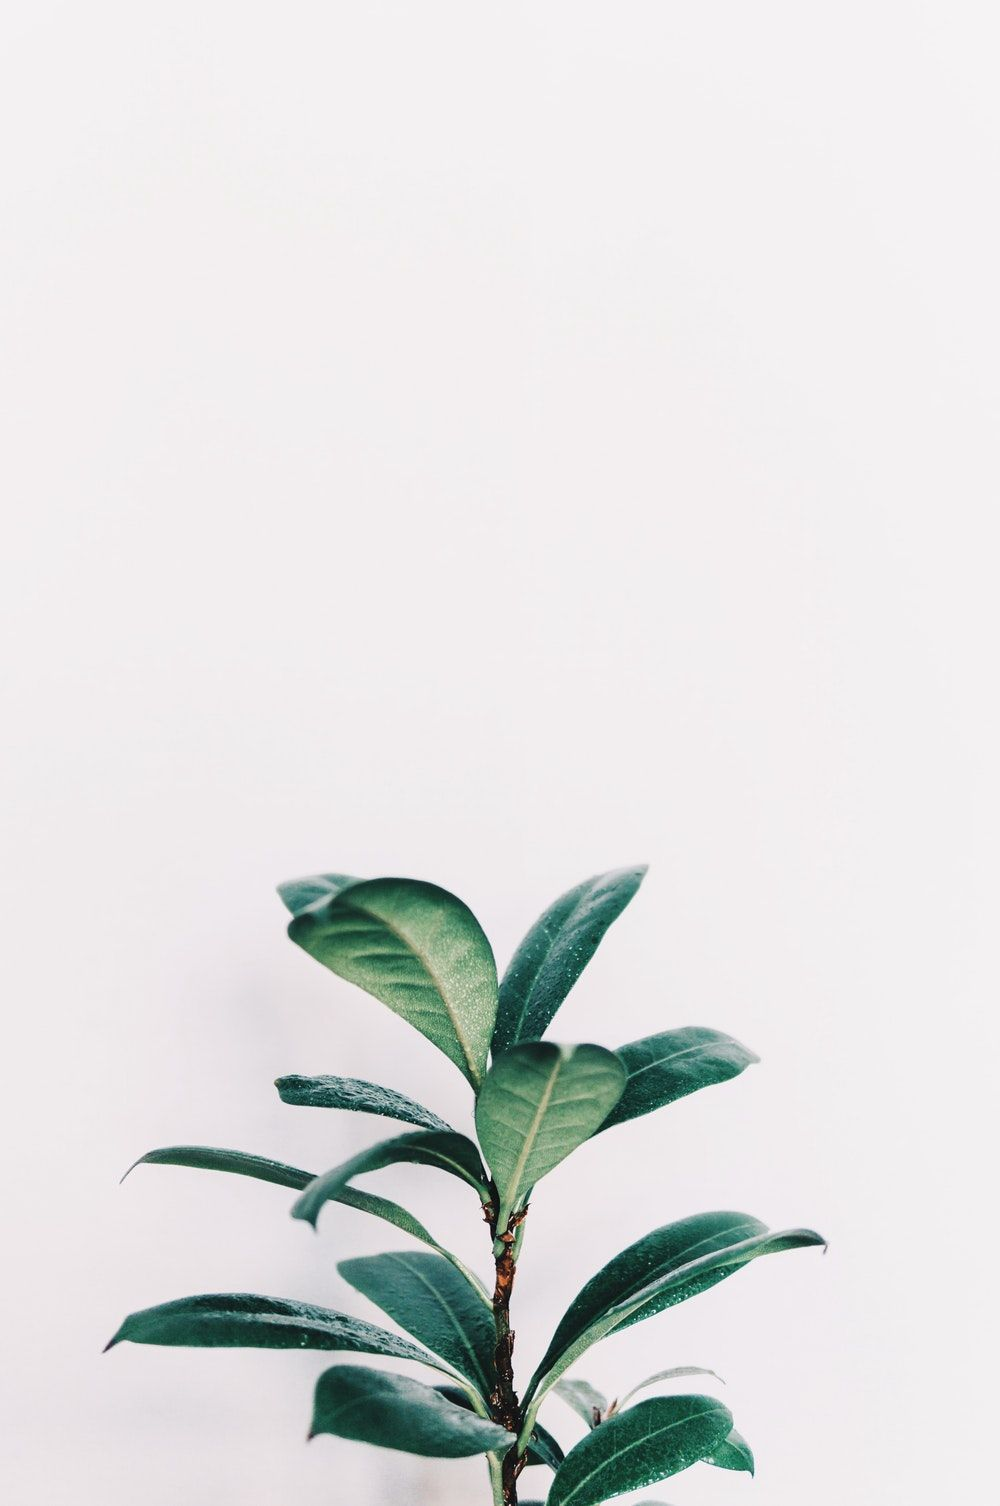 Plant Aesthetic Laptop Wallpapers